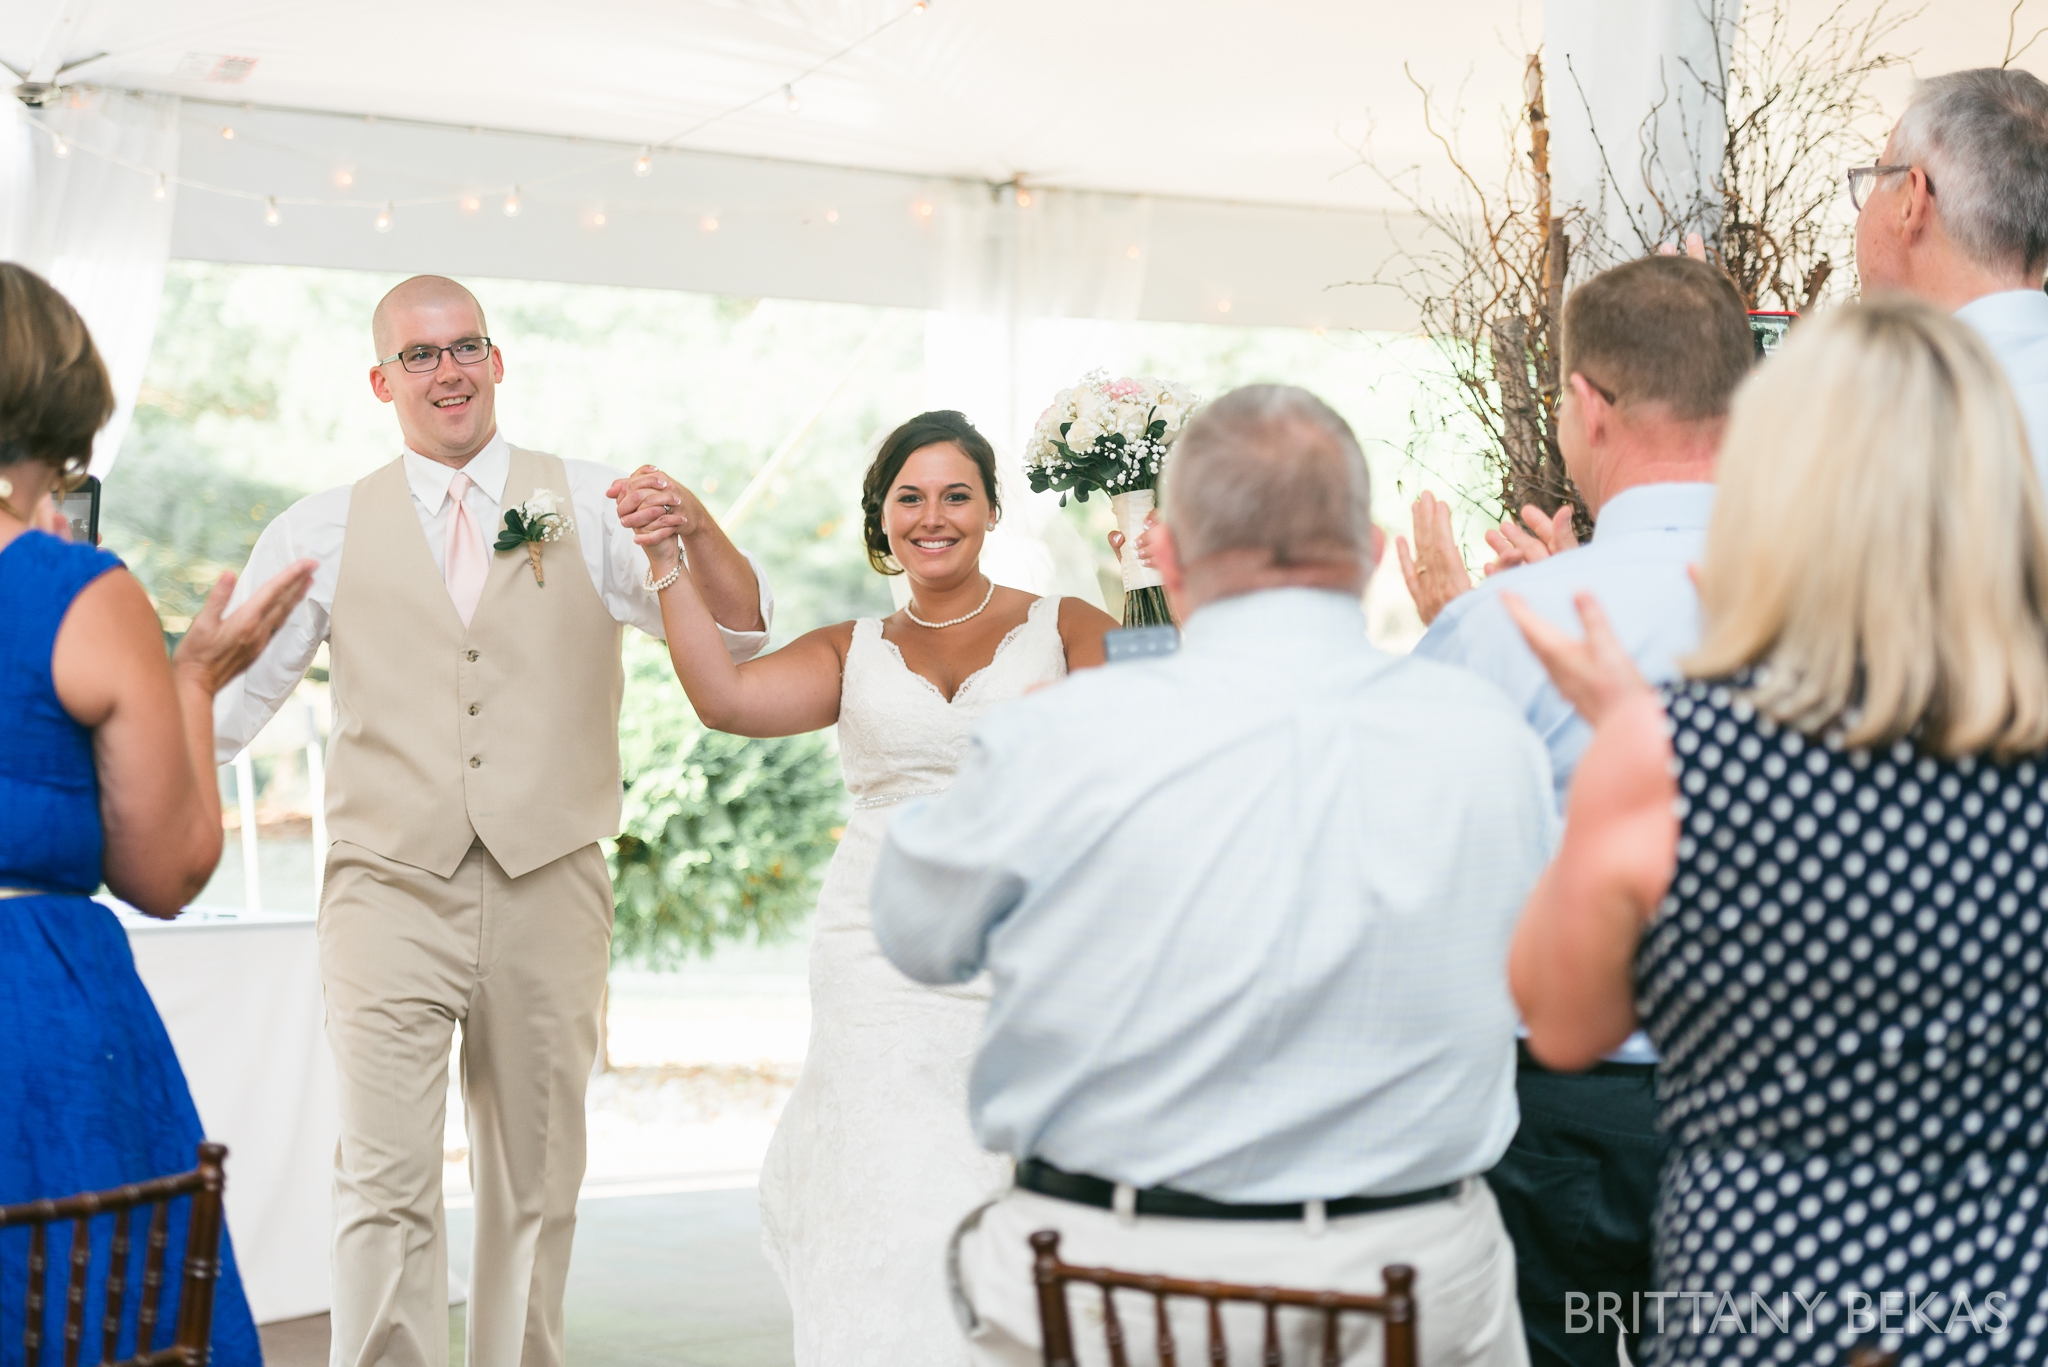 Oak Hill Galena Wedding Photos - Brittany Bekas Photography_0039